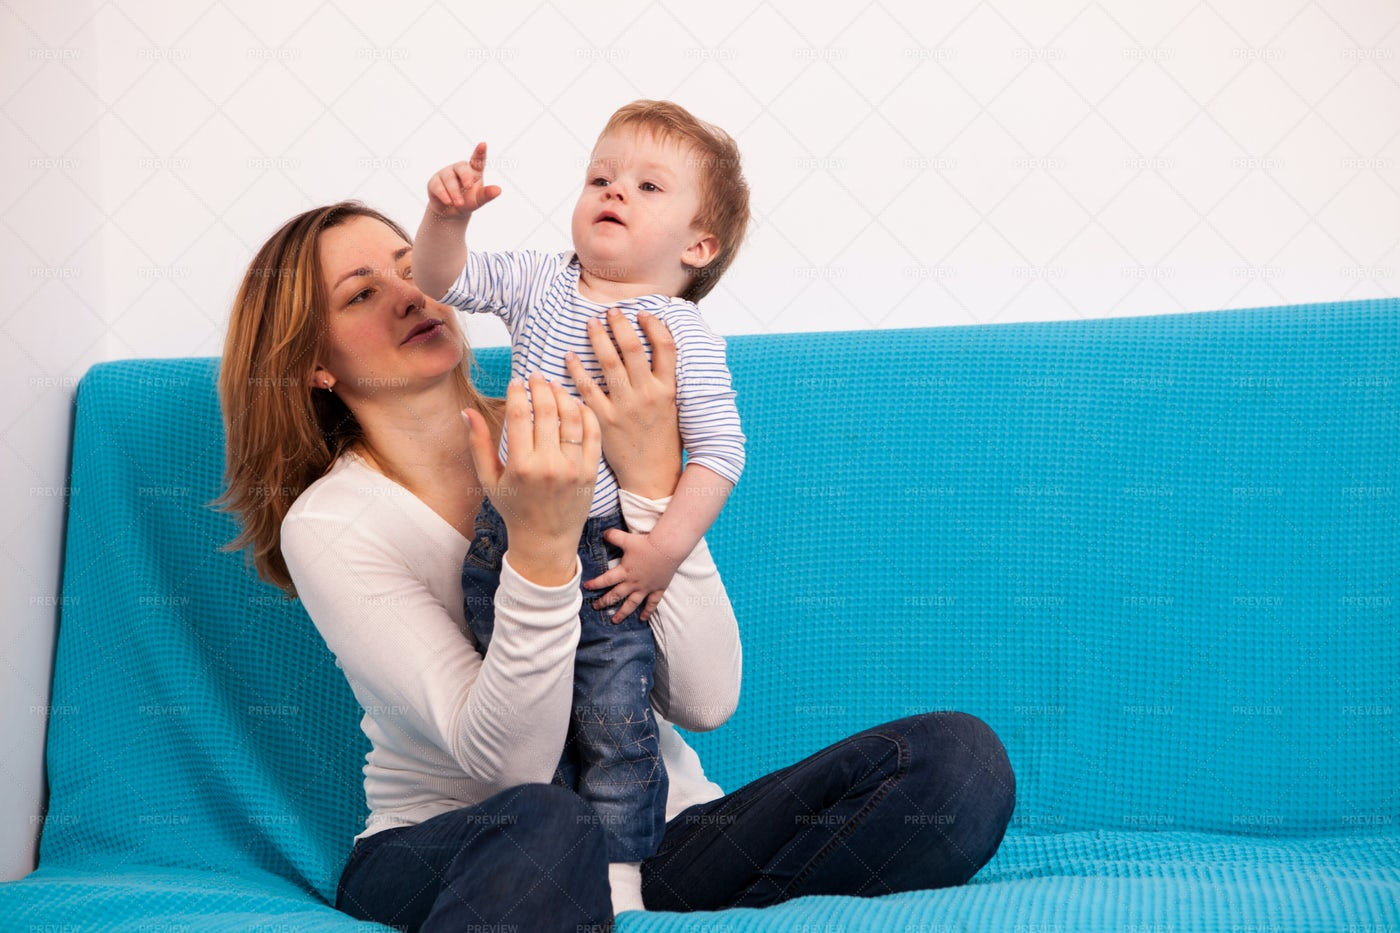 Mother And Baby Playing Together: Stock Photos